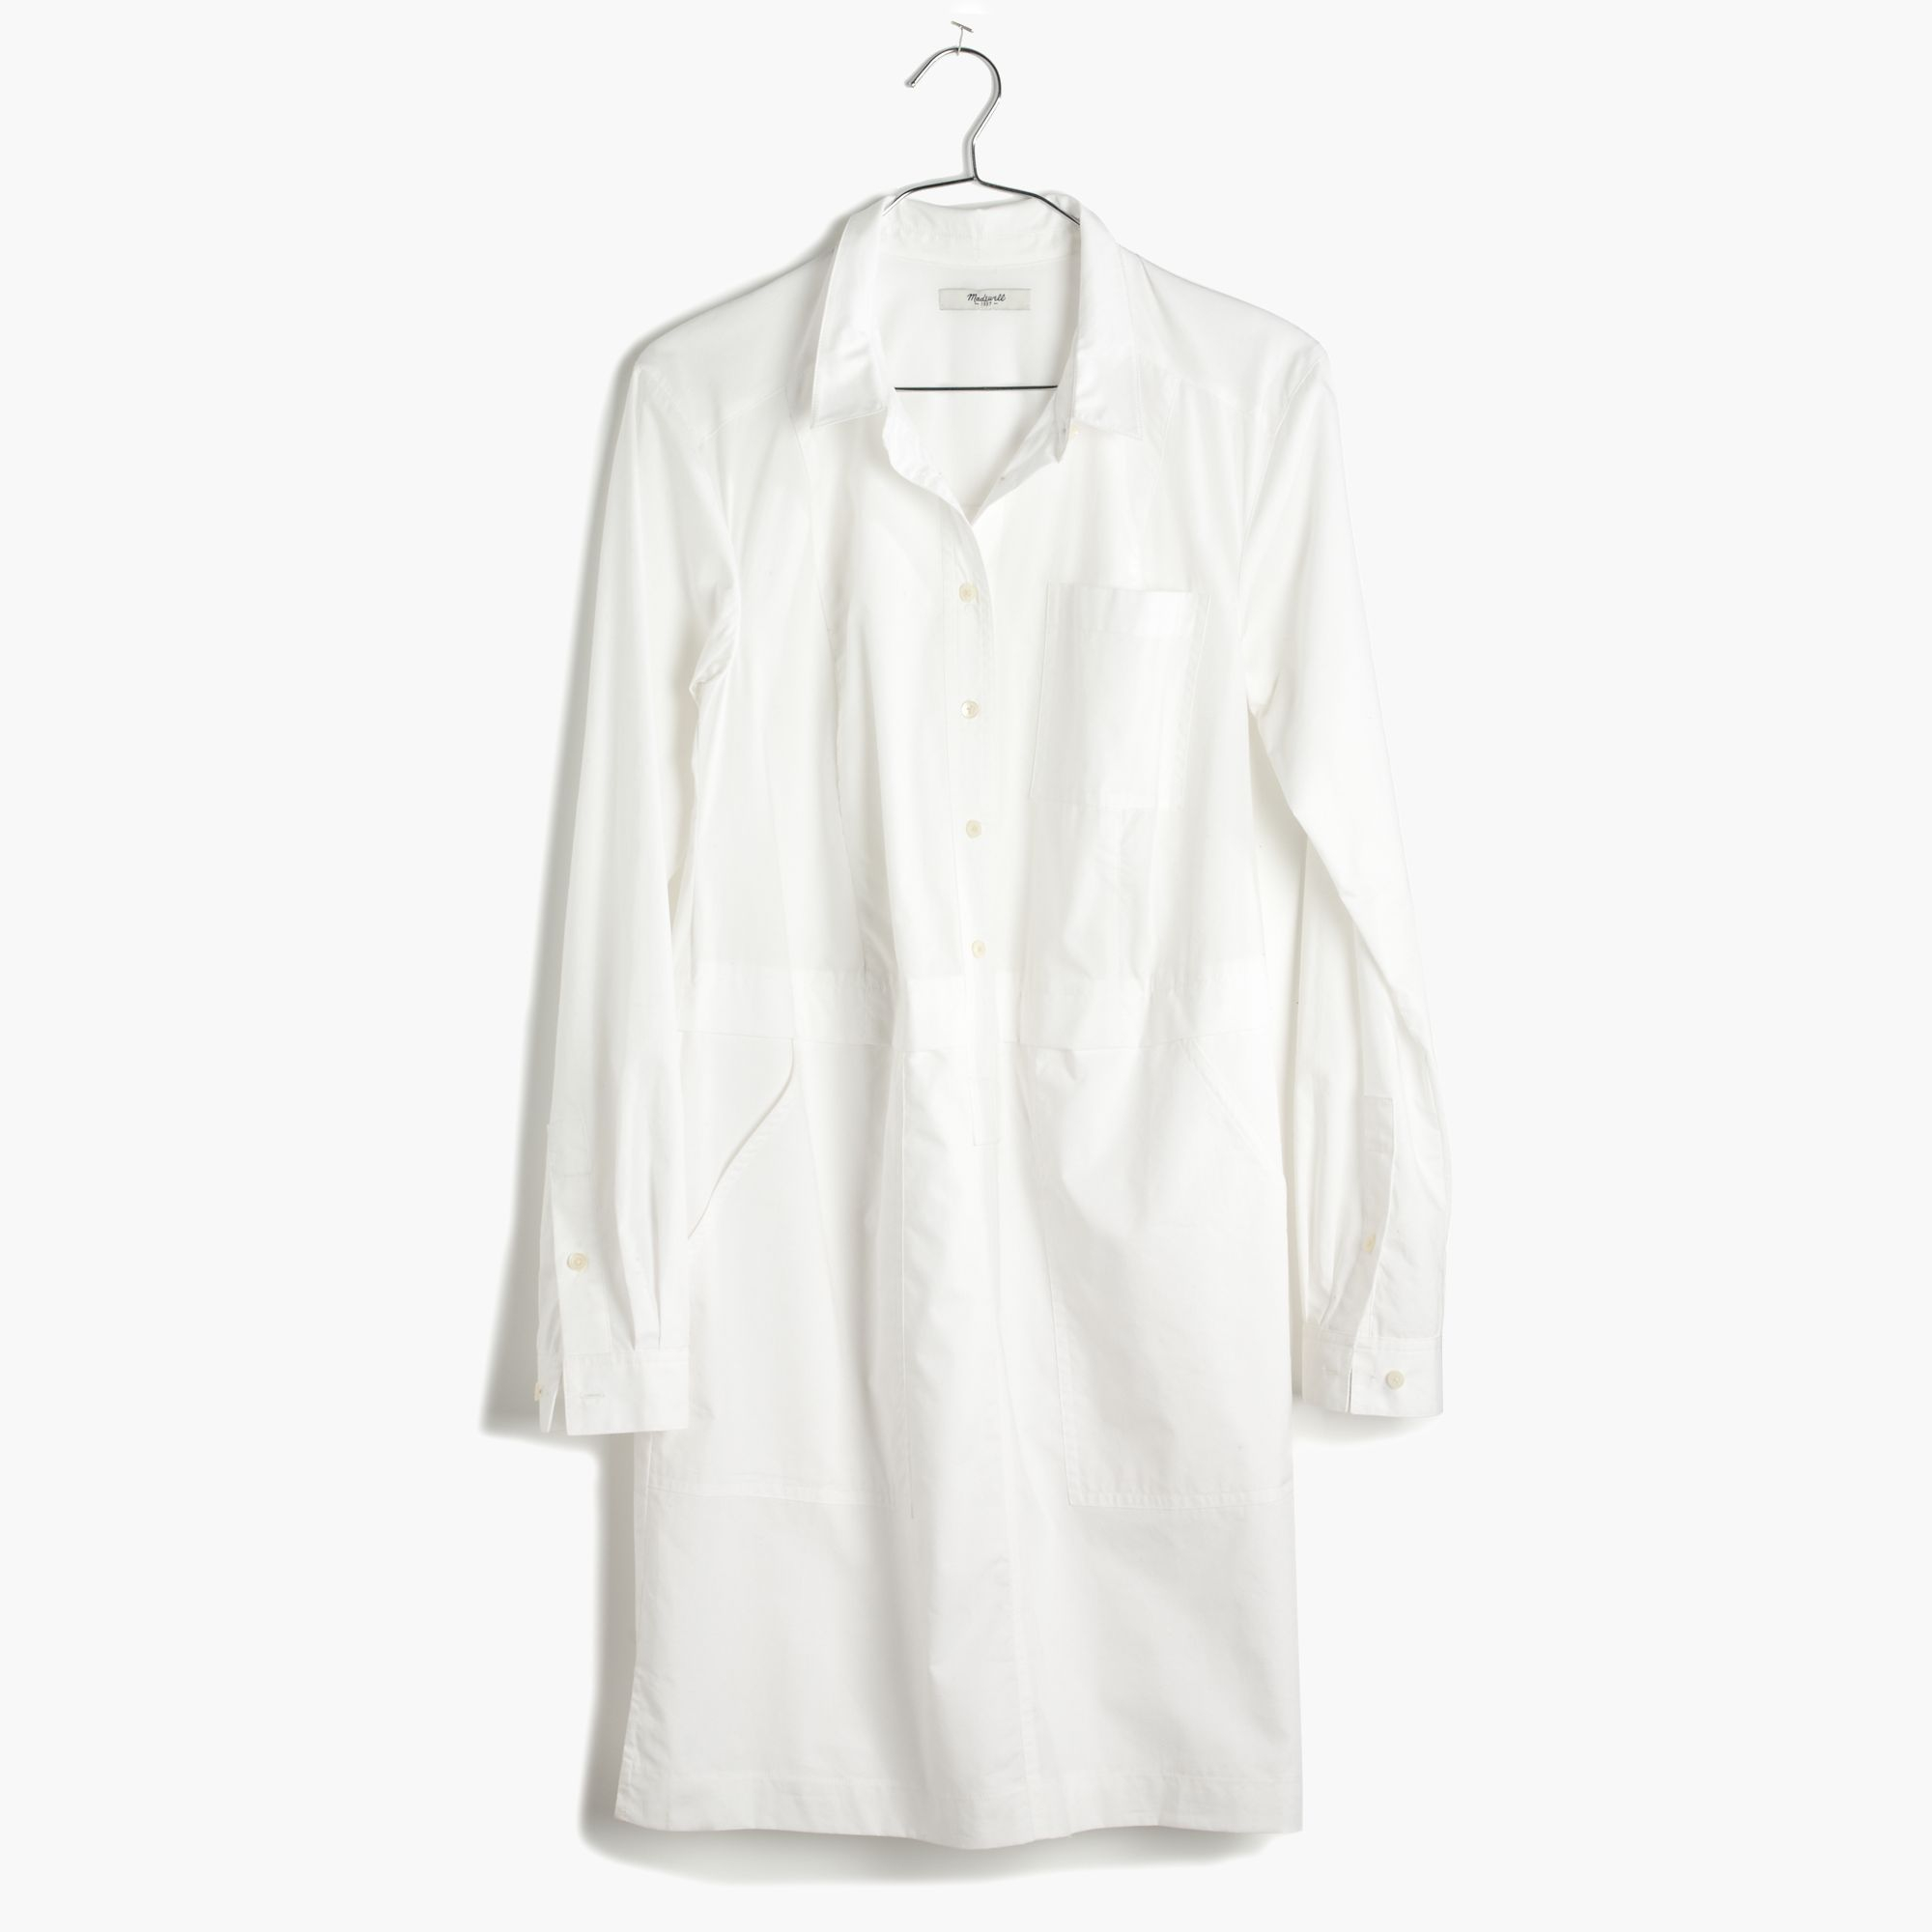 4b37ced804f Madewell Button-Down Shirtdress in White - Lyst